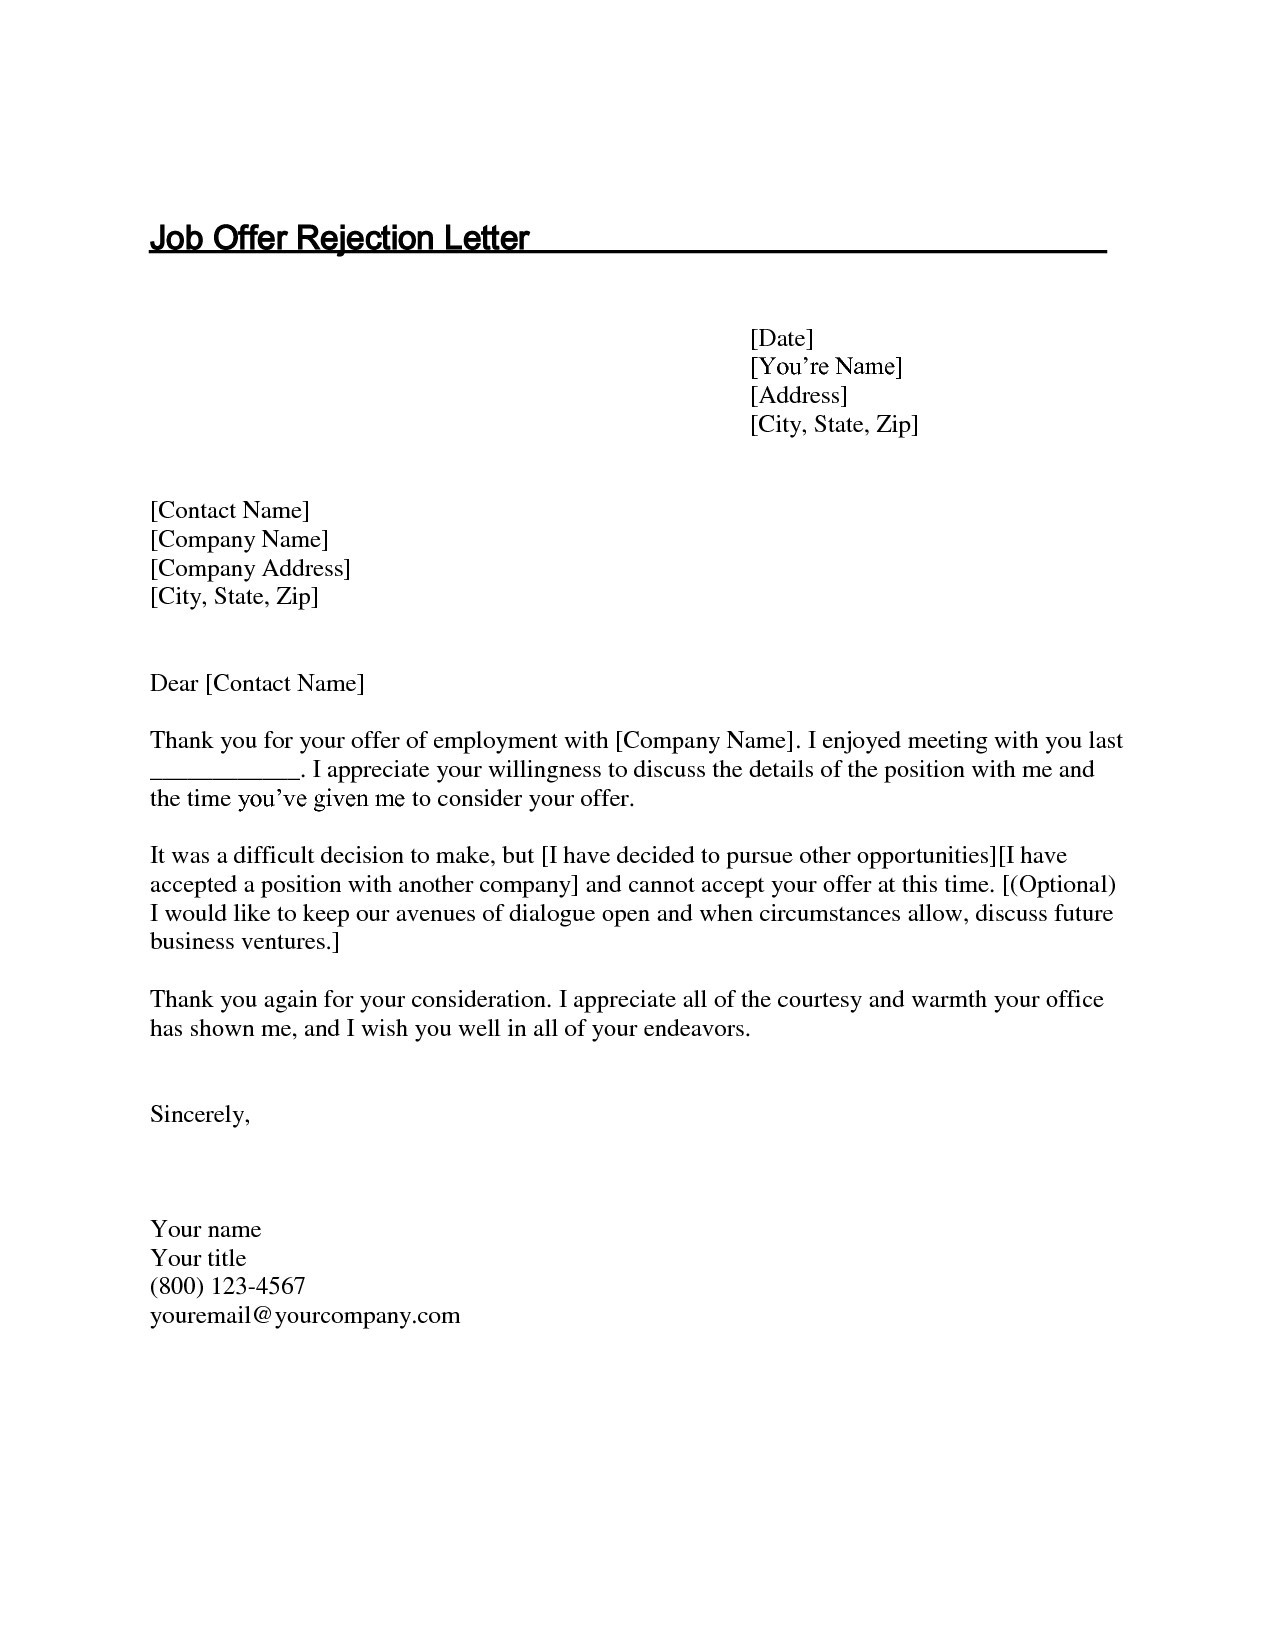 Employment Rejection Letter Template - Thank You Letter after Job Fer Decline Luxury New Rejection Letter